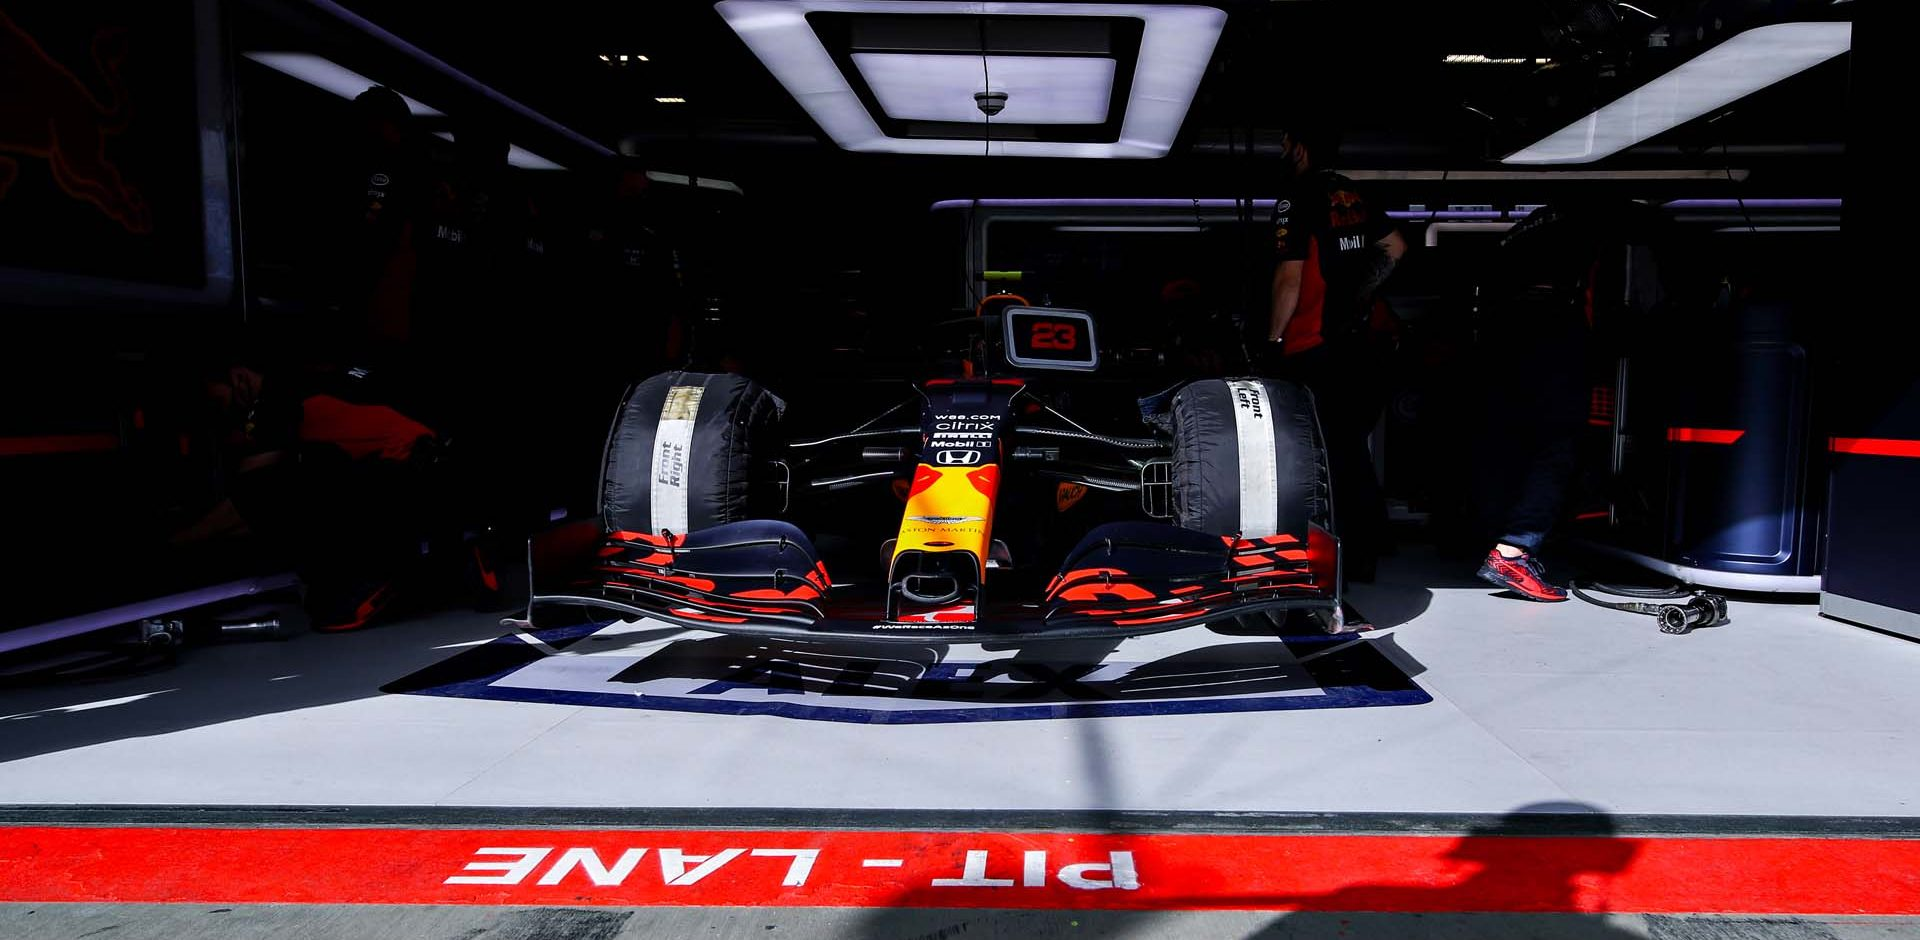 NUERBURG, GERMANY - OCTOBER 10: Alexander Albon of Thailand and Red Bull Racing prepares to drive in the garage during final practice ahead of the F1 Eifel Grand Prix at Nuerburgring on October 10, 2020 in Nuerburg, Germany. (Photo by Mark Thompson/Getty Images)